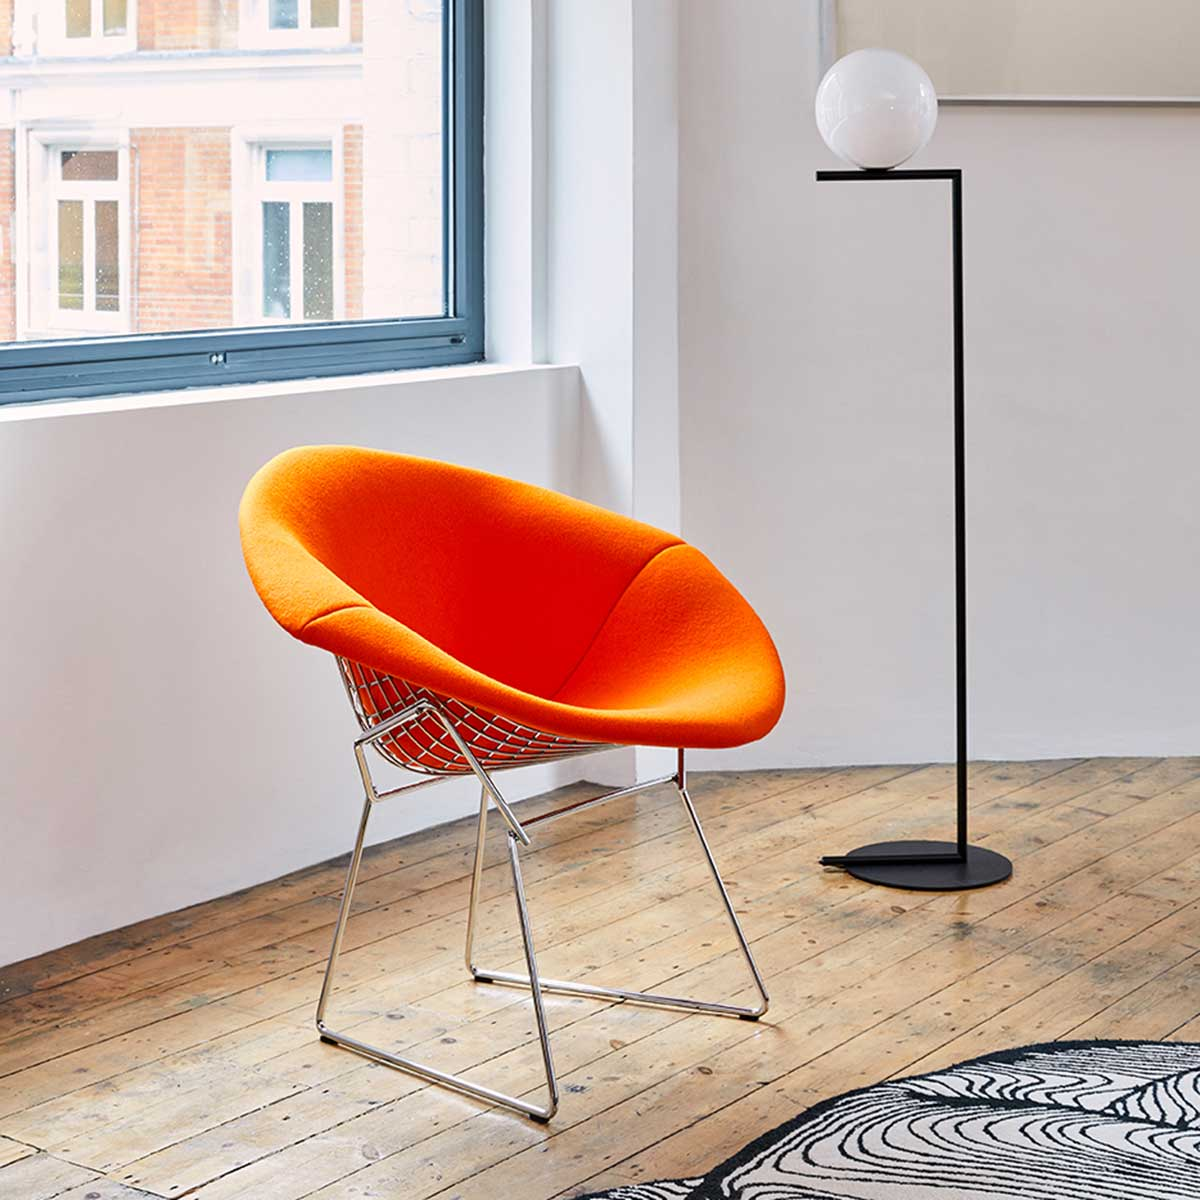 Bertoia Diamond Chair - fully upholstered